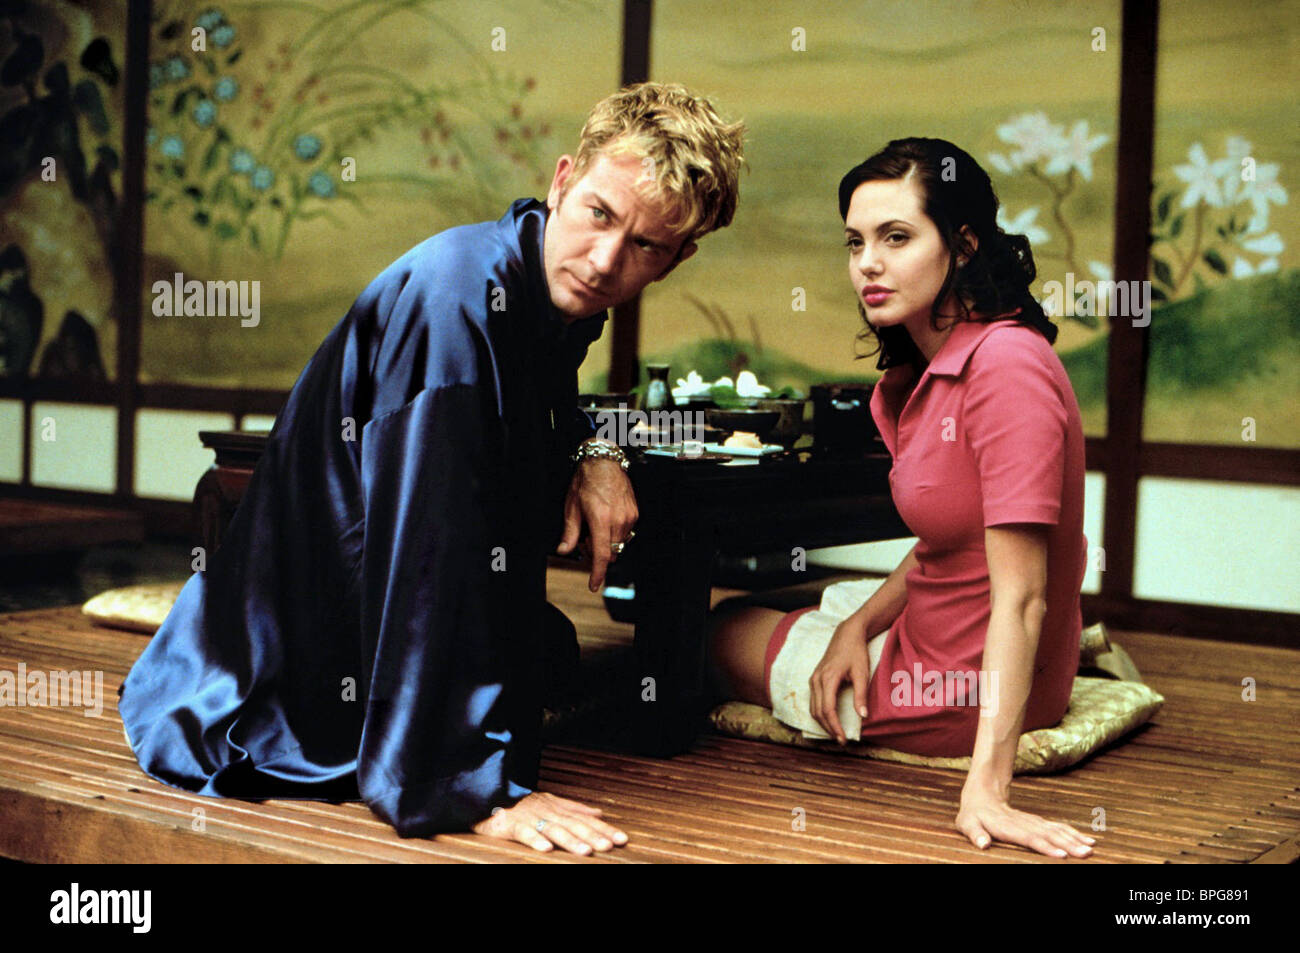 timothy-hutton-angelina-jolie-playing-go